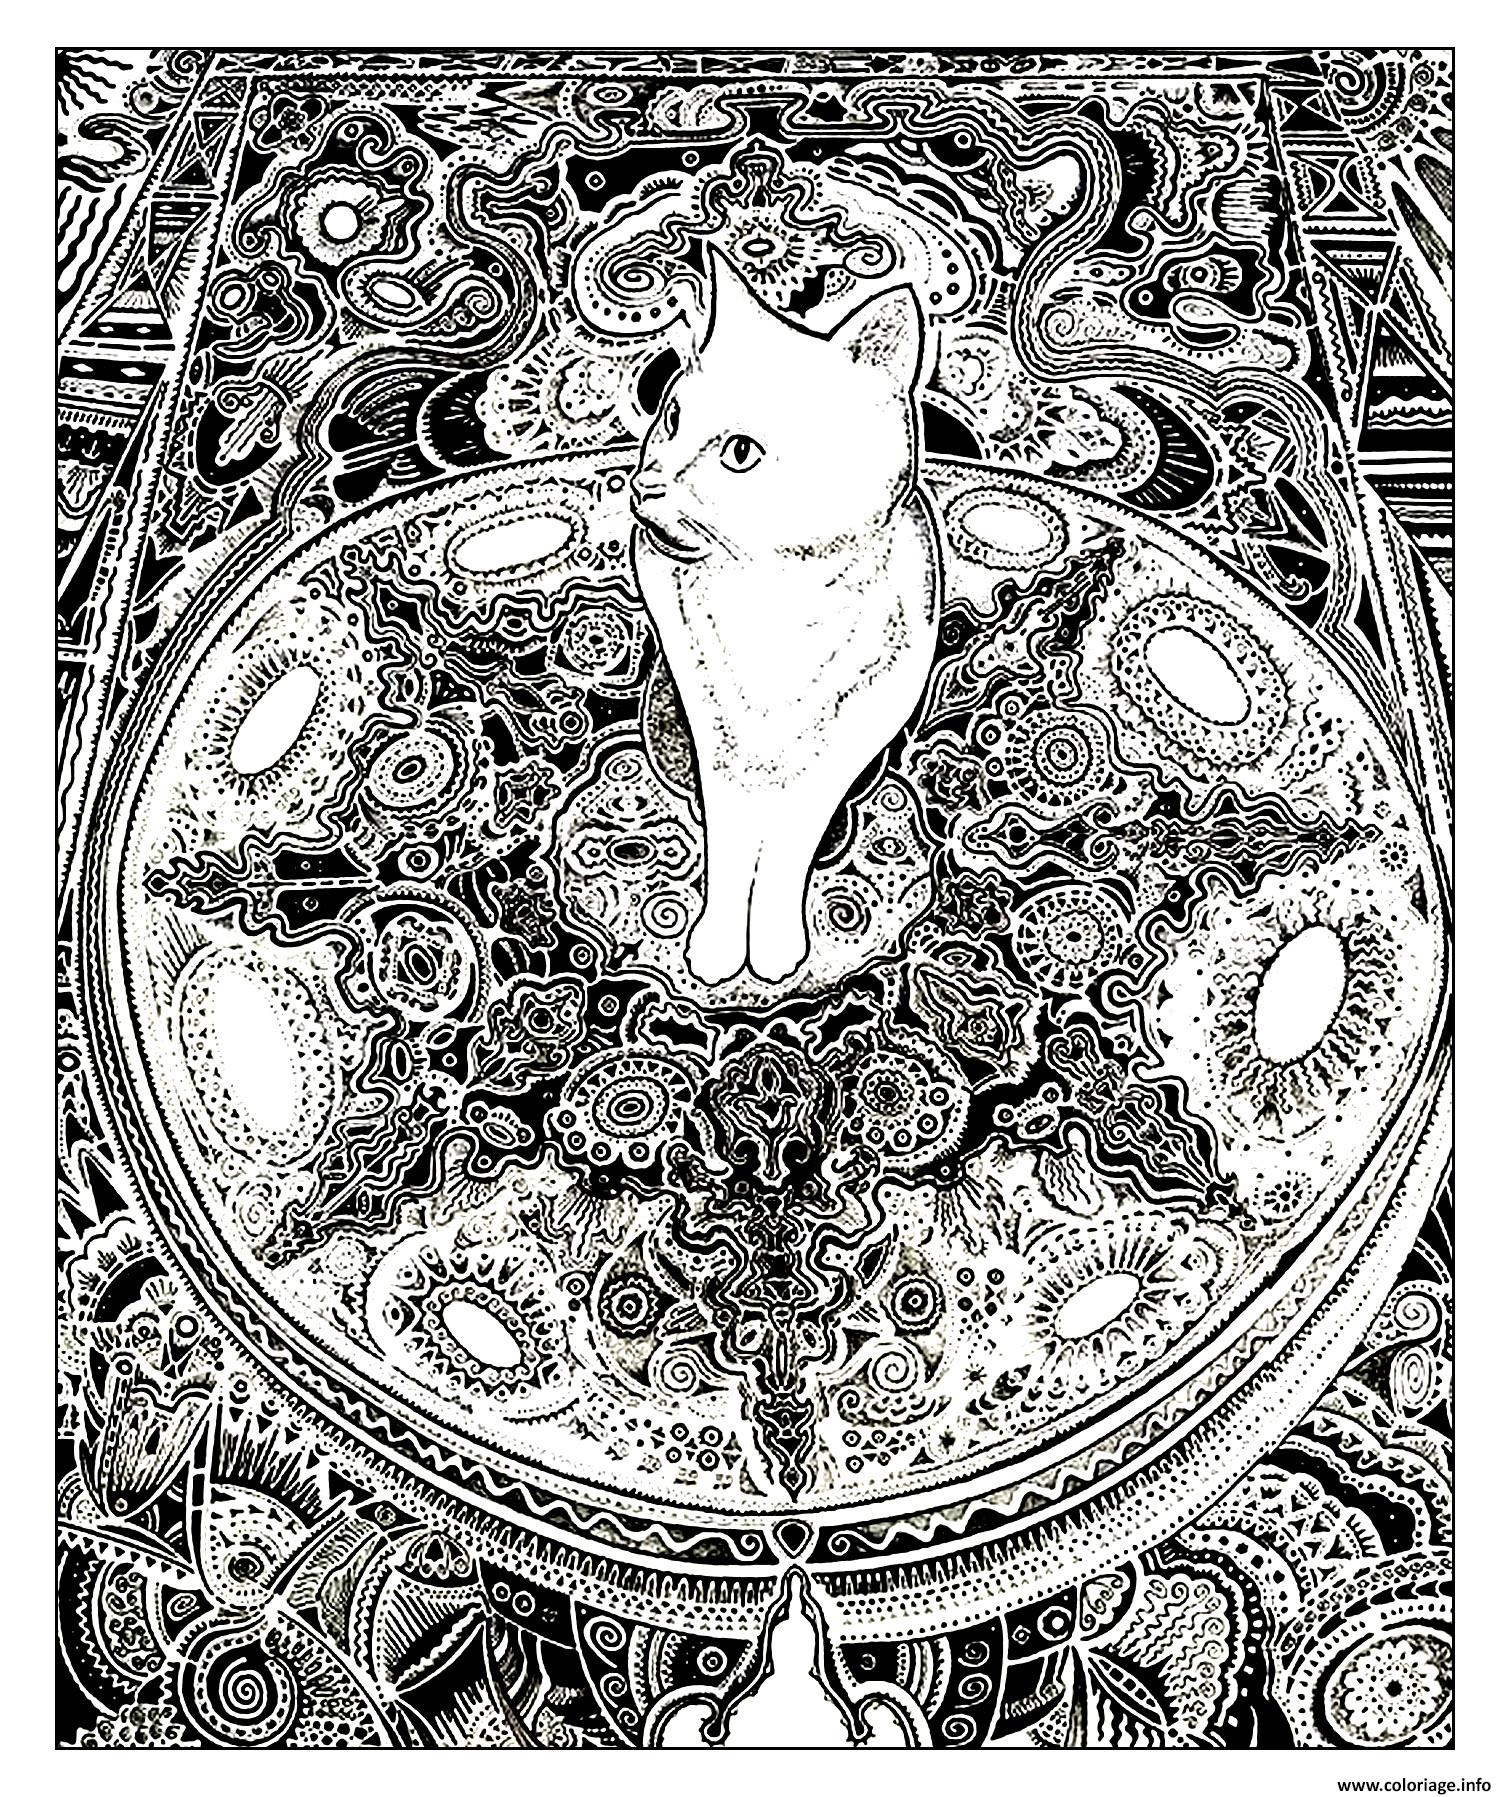 Coloriage adulte animaux chat tapis dessin - Chat a colorier adulte ...